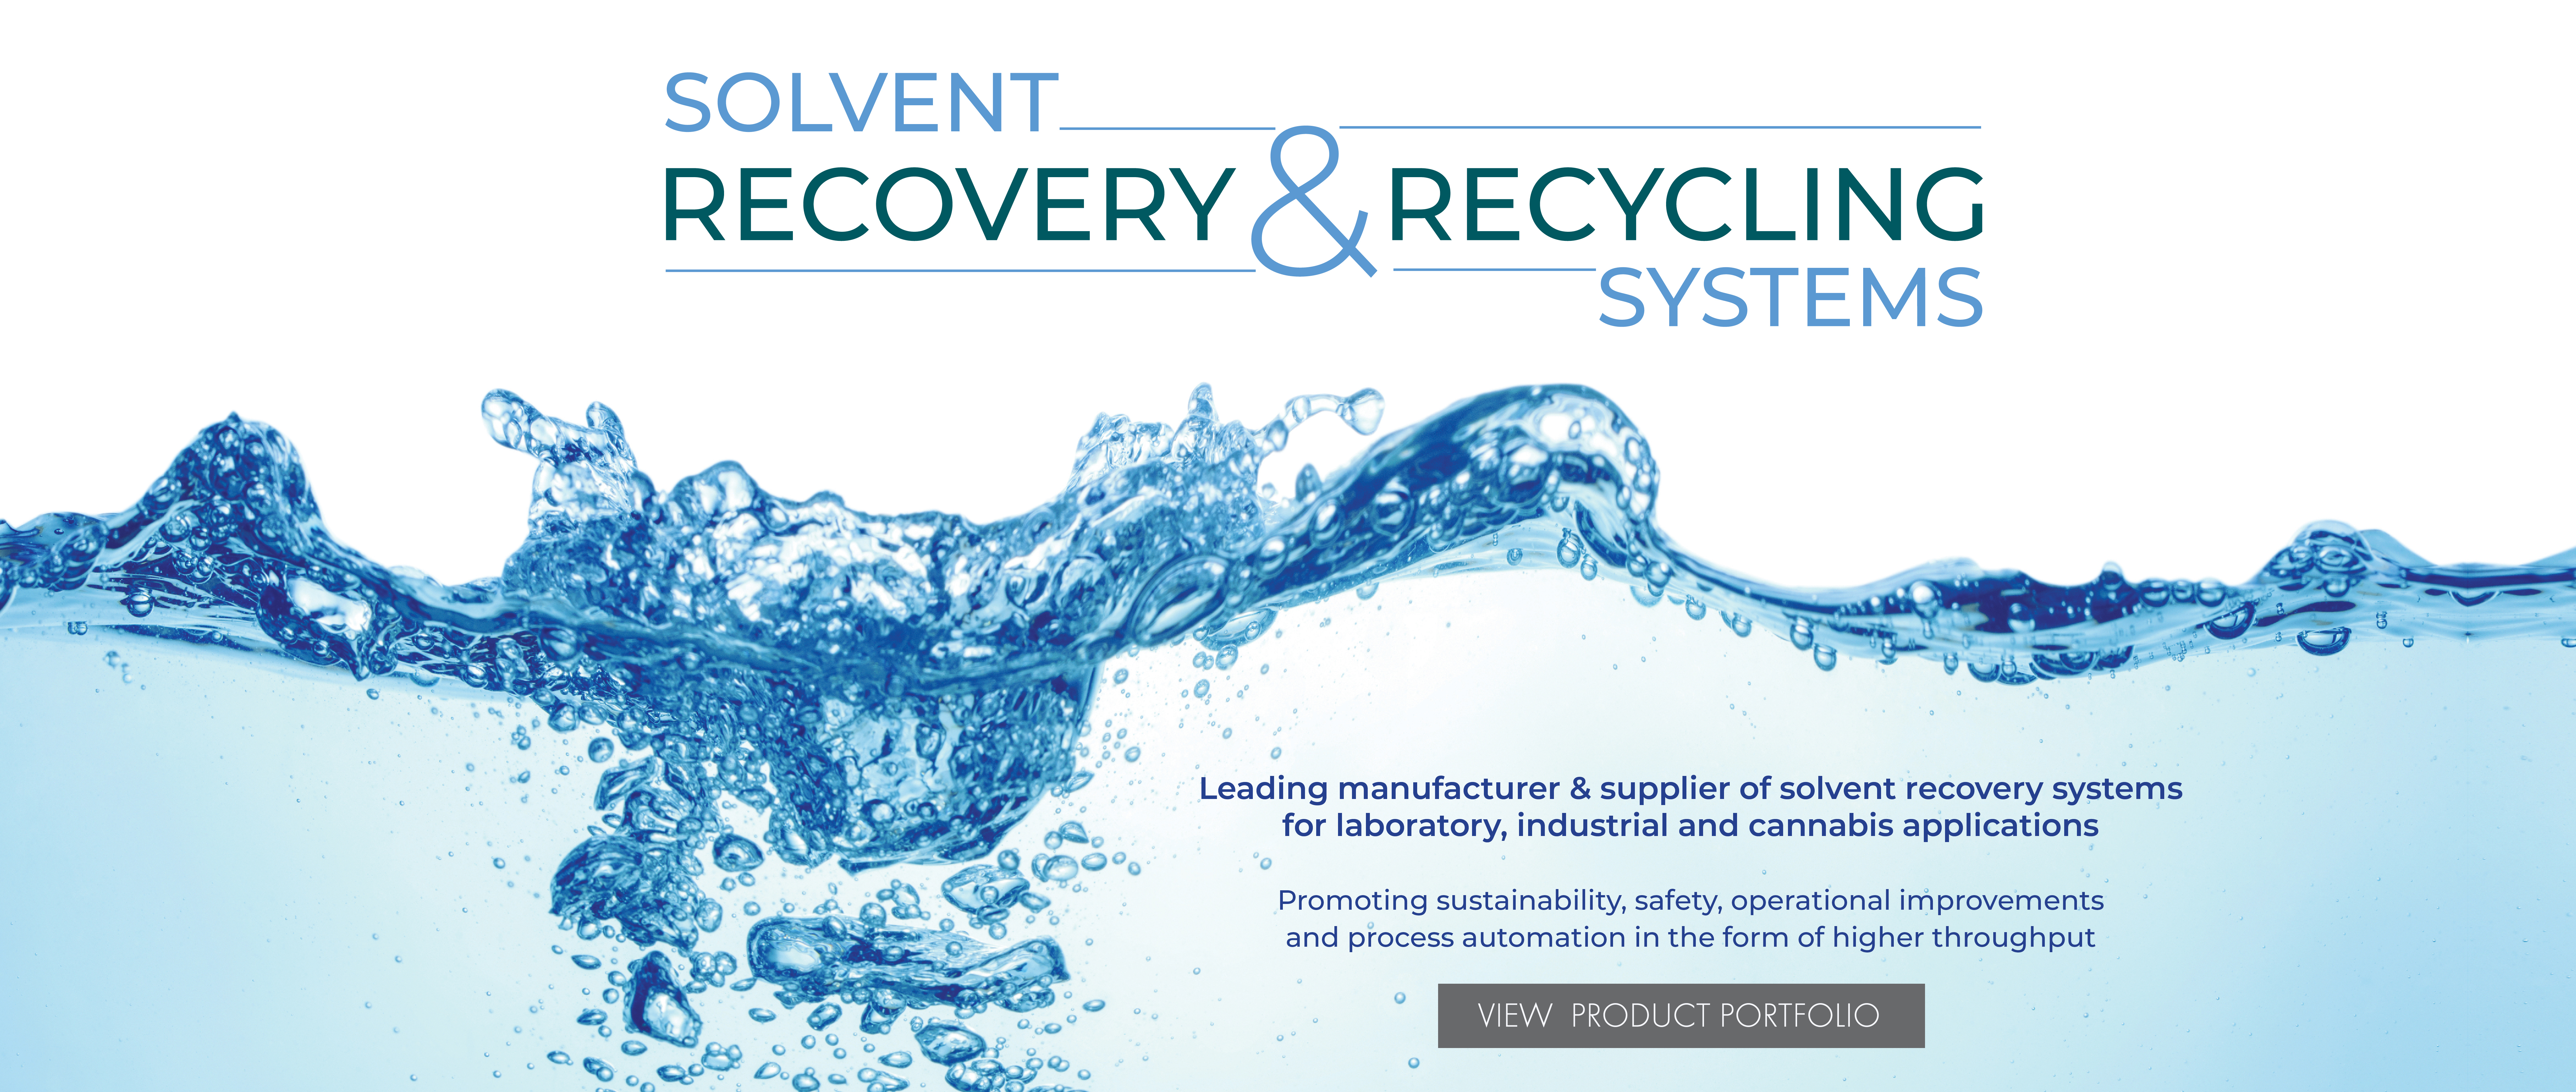 Solvent Recovery & Recycling Systems